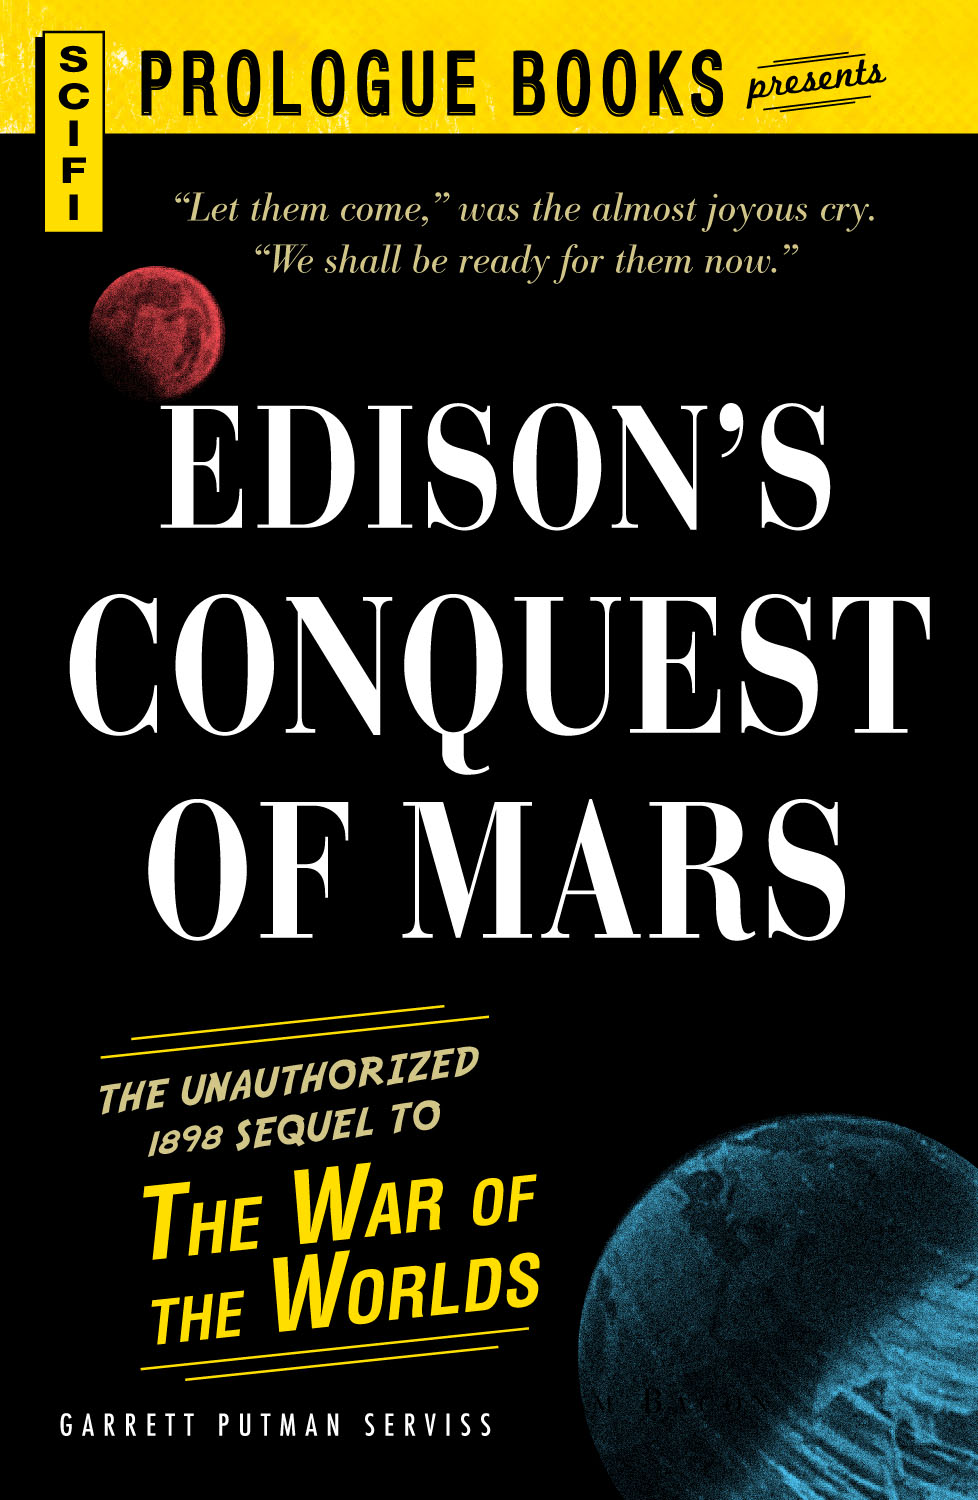 Edison's Conquest Of Mars: The Unauthorized 1888 Sequel to The War of the Worlds By: Garrett Putnam Serviss